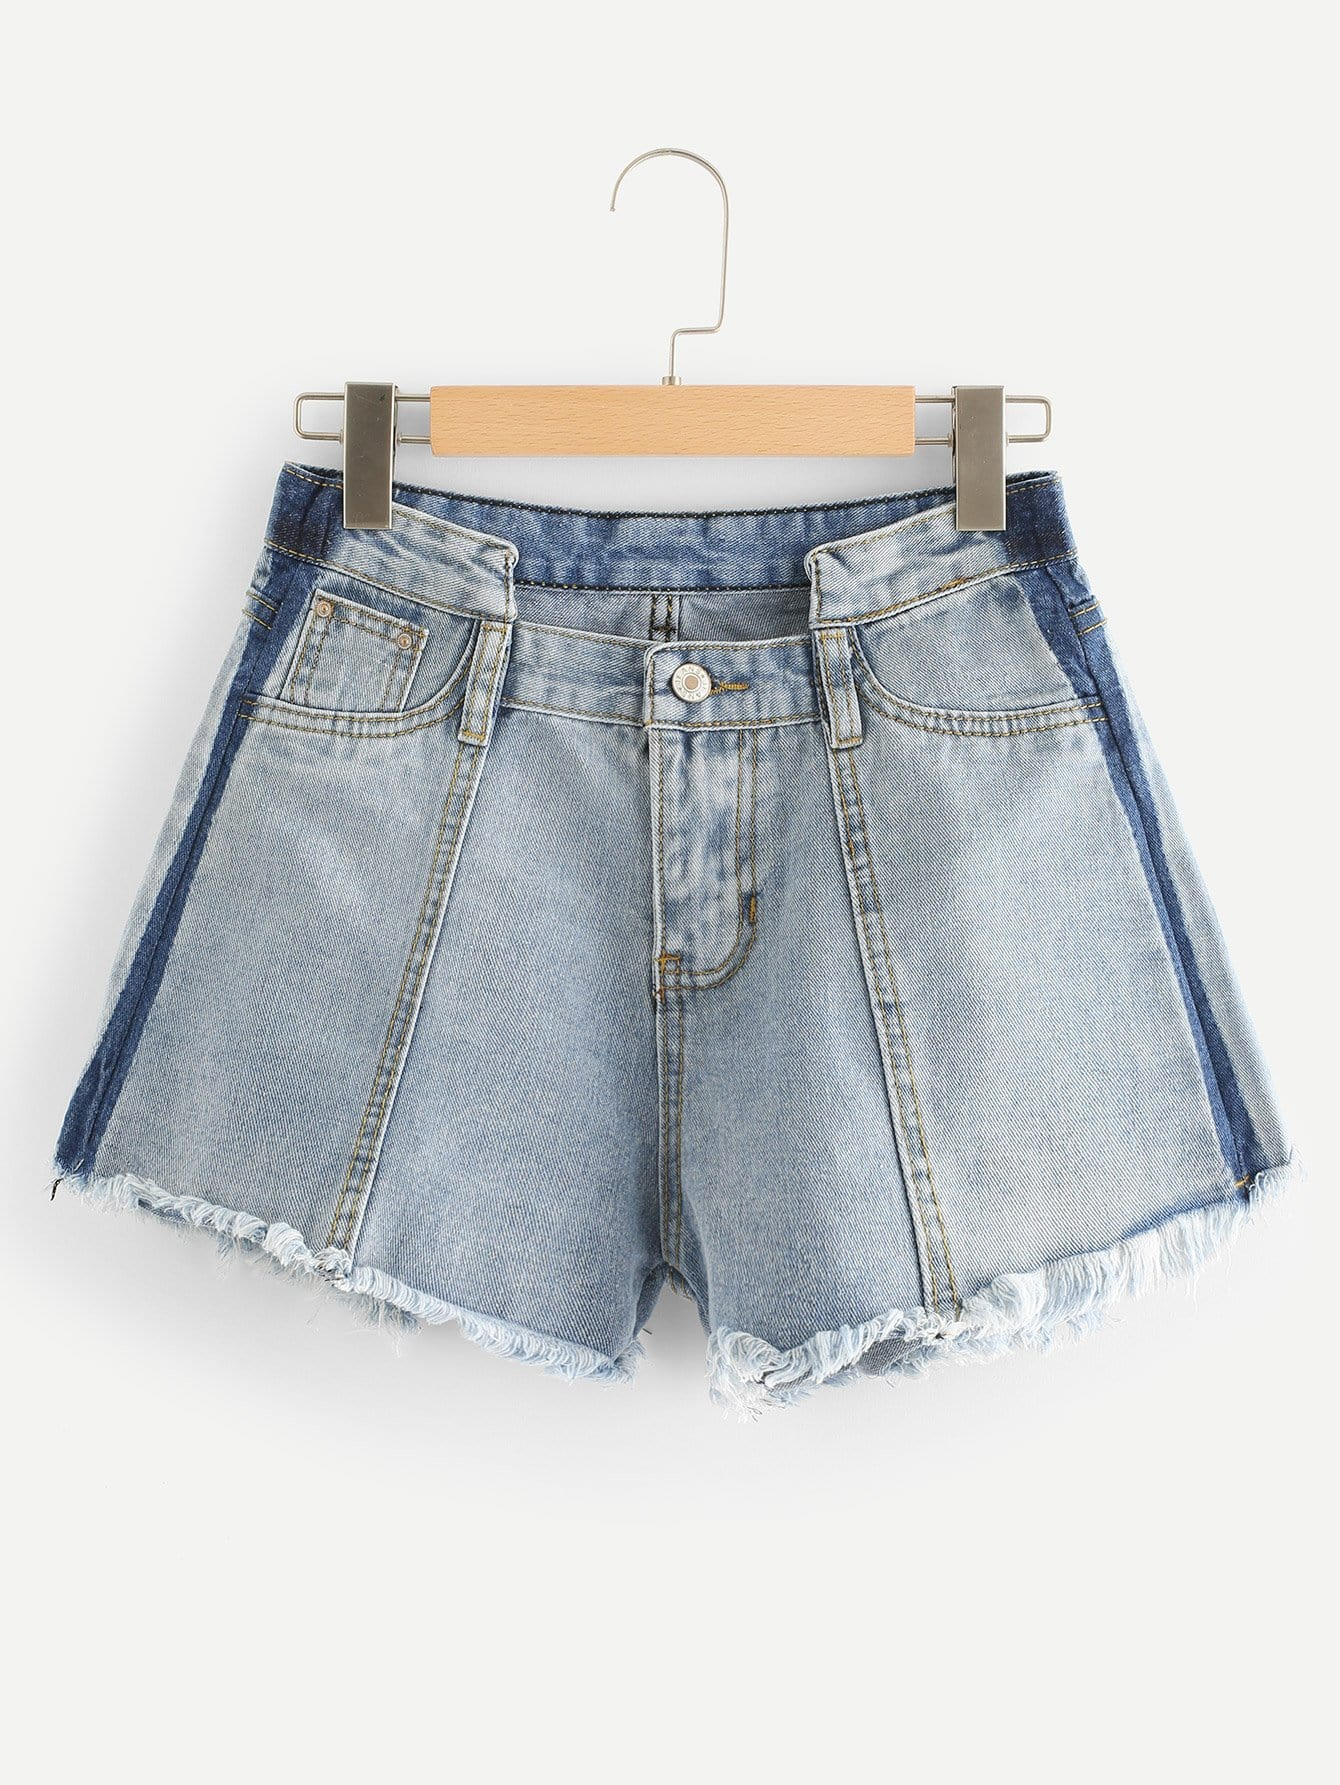 Raw Hem Bleach Wash Denim Shorts lace up raw hem bleach wash hot pants